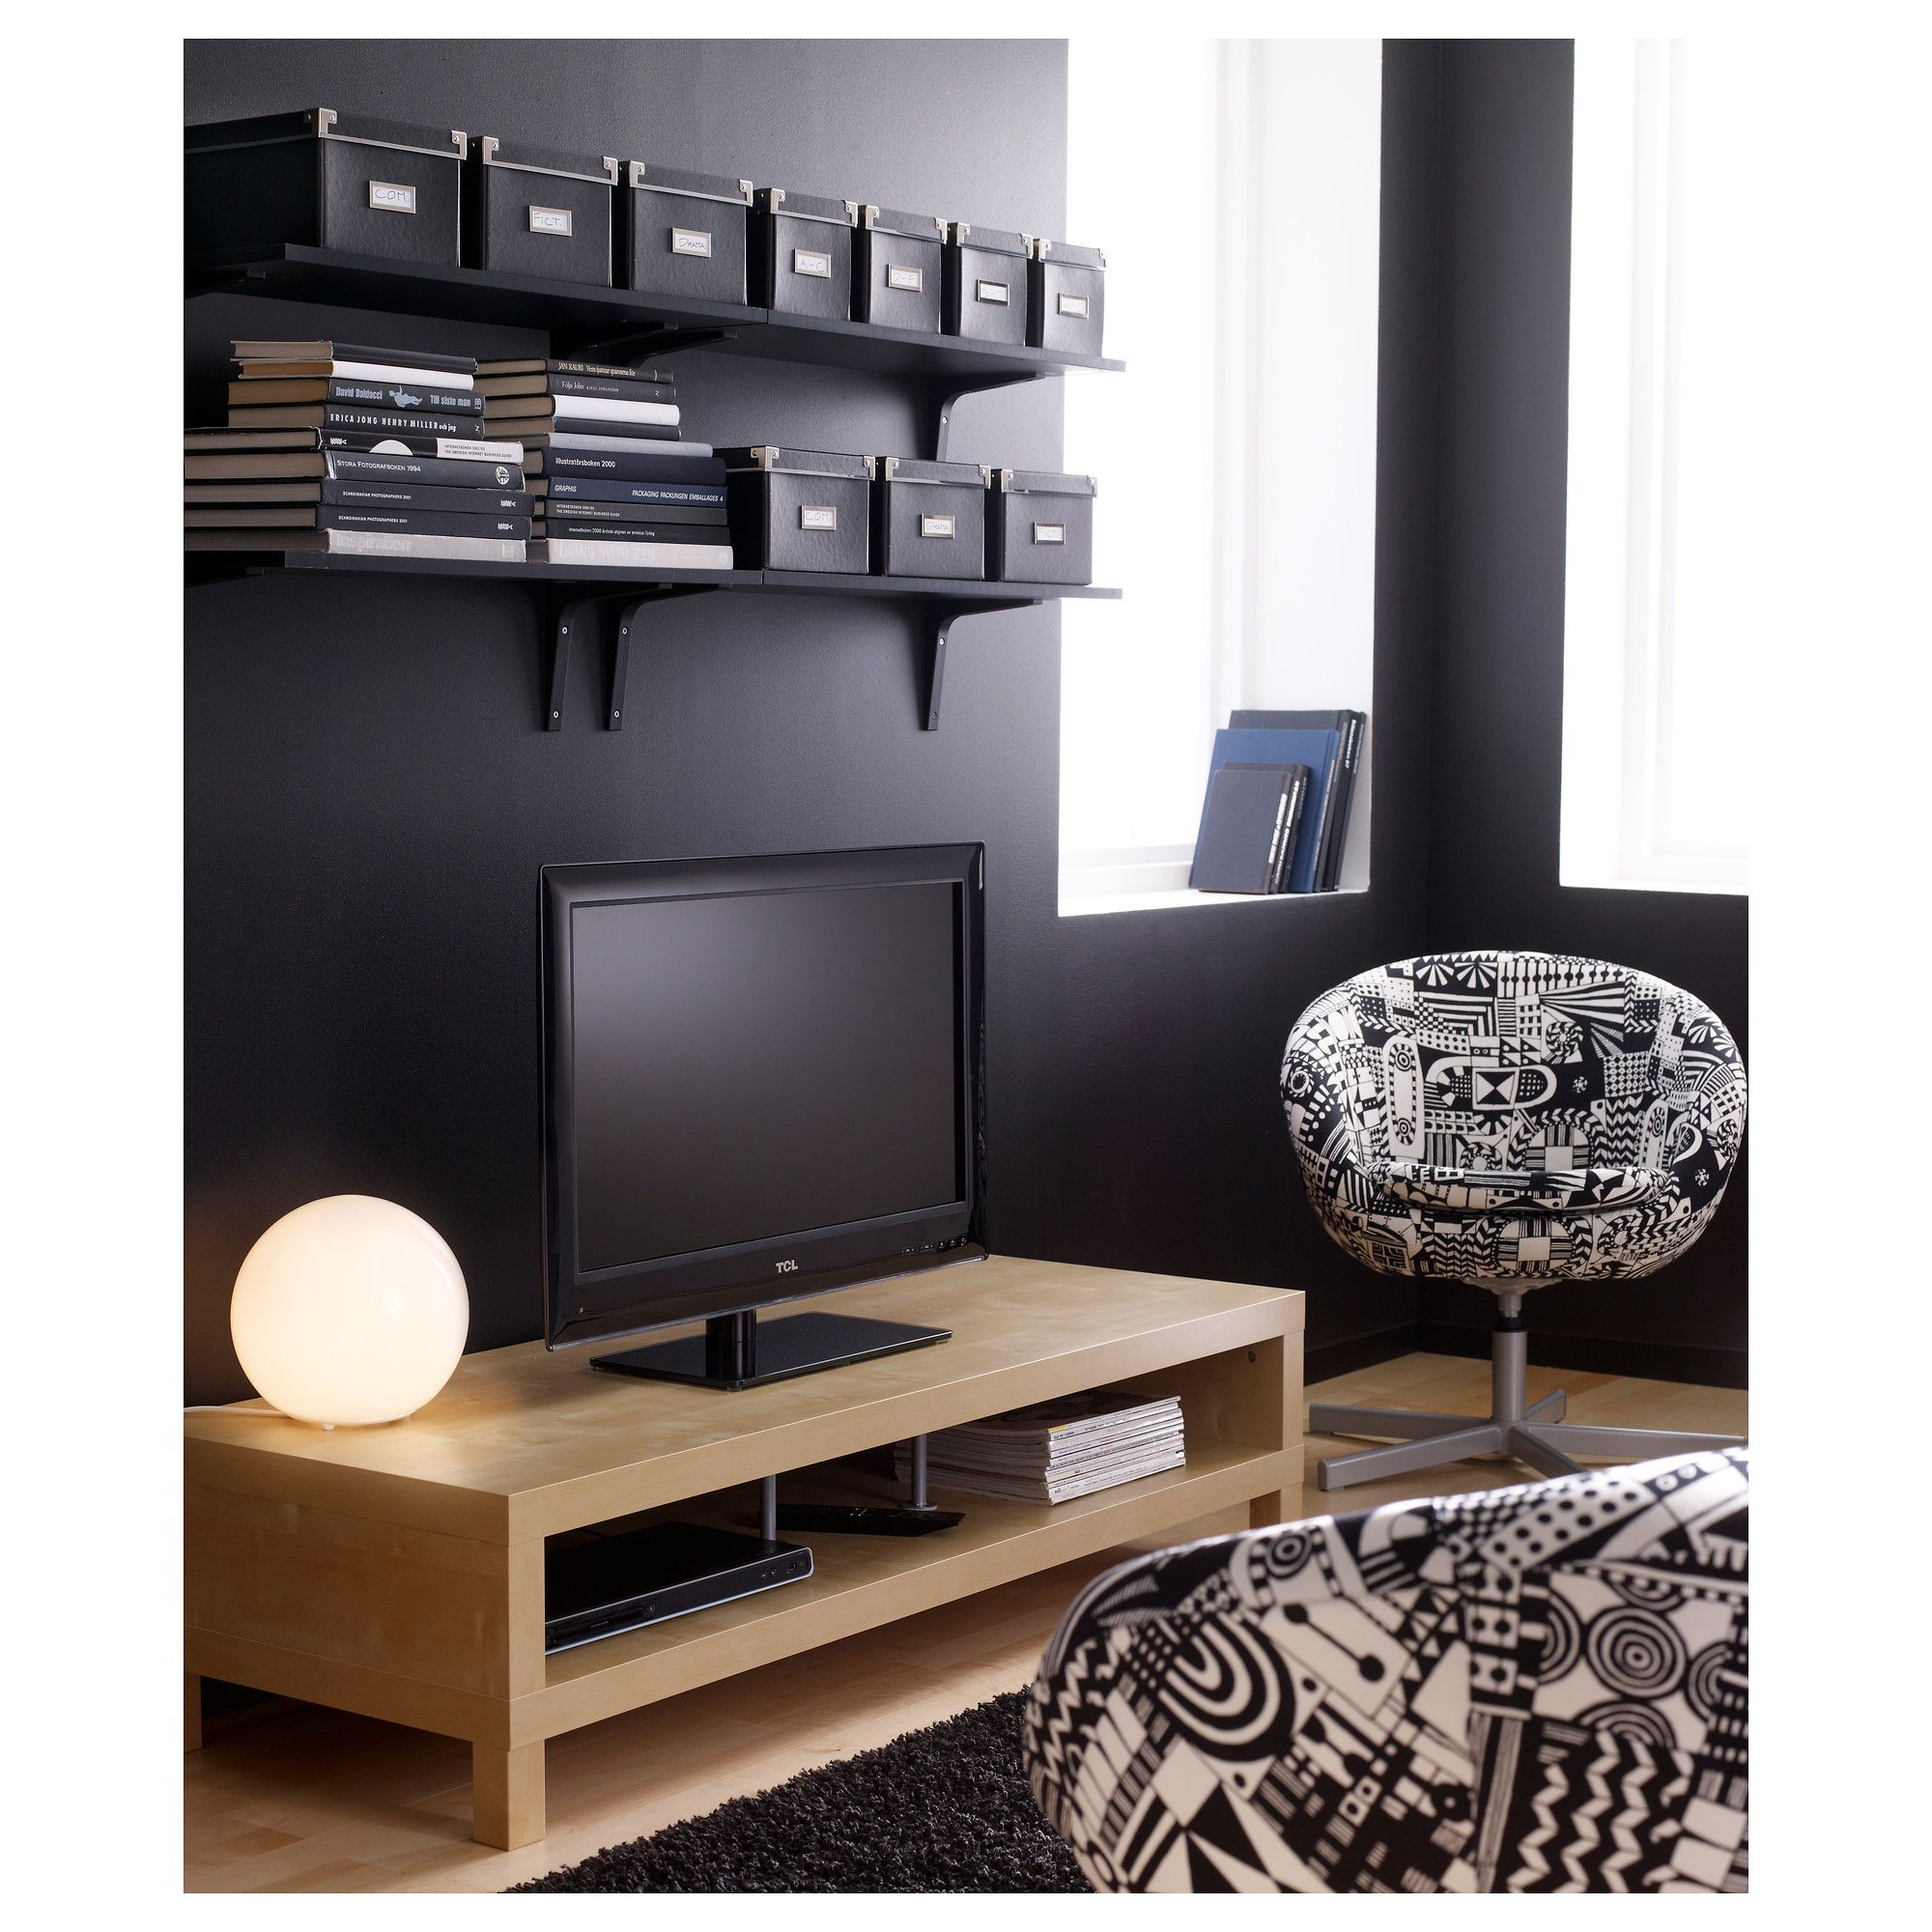 Meuble Tv Fado - Fado Table Lamp White Ikea Table Room And Lights[mjhdah]https://image.but.fr/is/image/but/5904767124250_AMB1?$produit_xl$&wid=1158&hei=1288&fit=fit,1